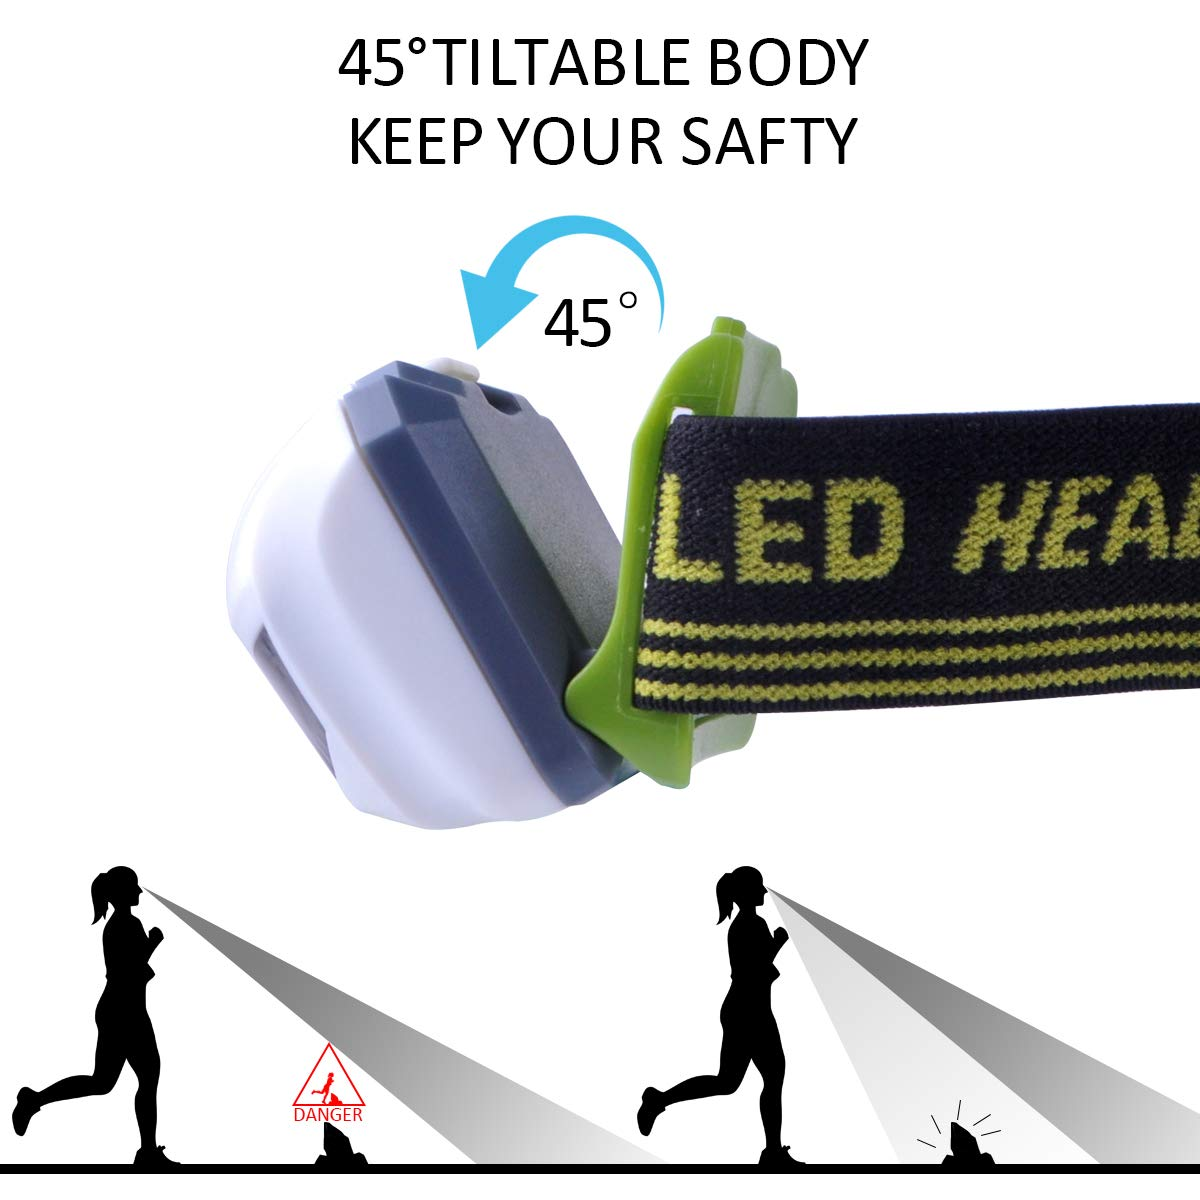 Ideapro LED Headlamp, 4 Lighting Modes Headlight, Battery Powered Headlamp Flashlight Brightest and Lightweight, Waterproof with Adjustable Headband and Flashing SOS Light for Camping Running 2 Pack by Ideapro (Image #2)